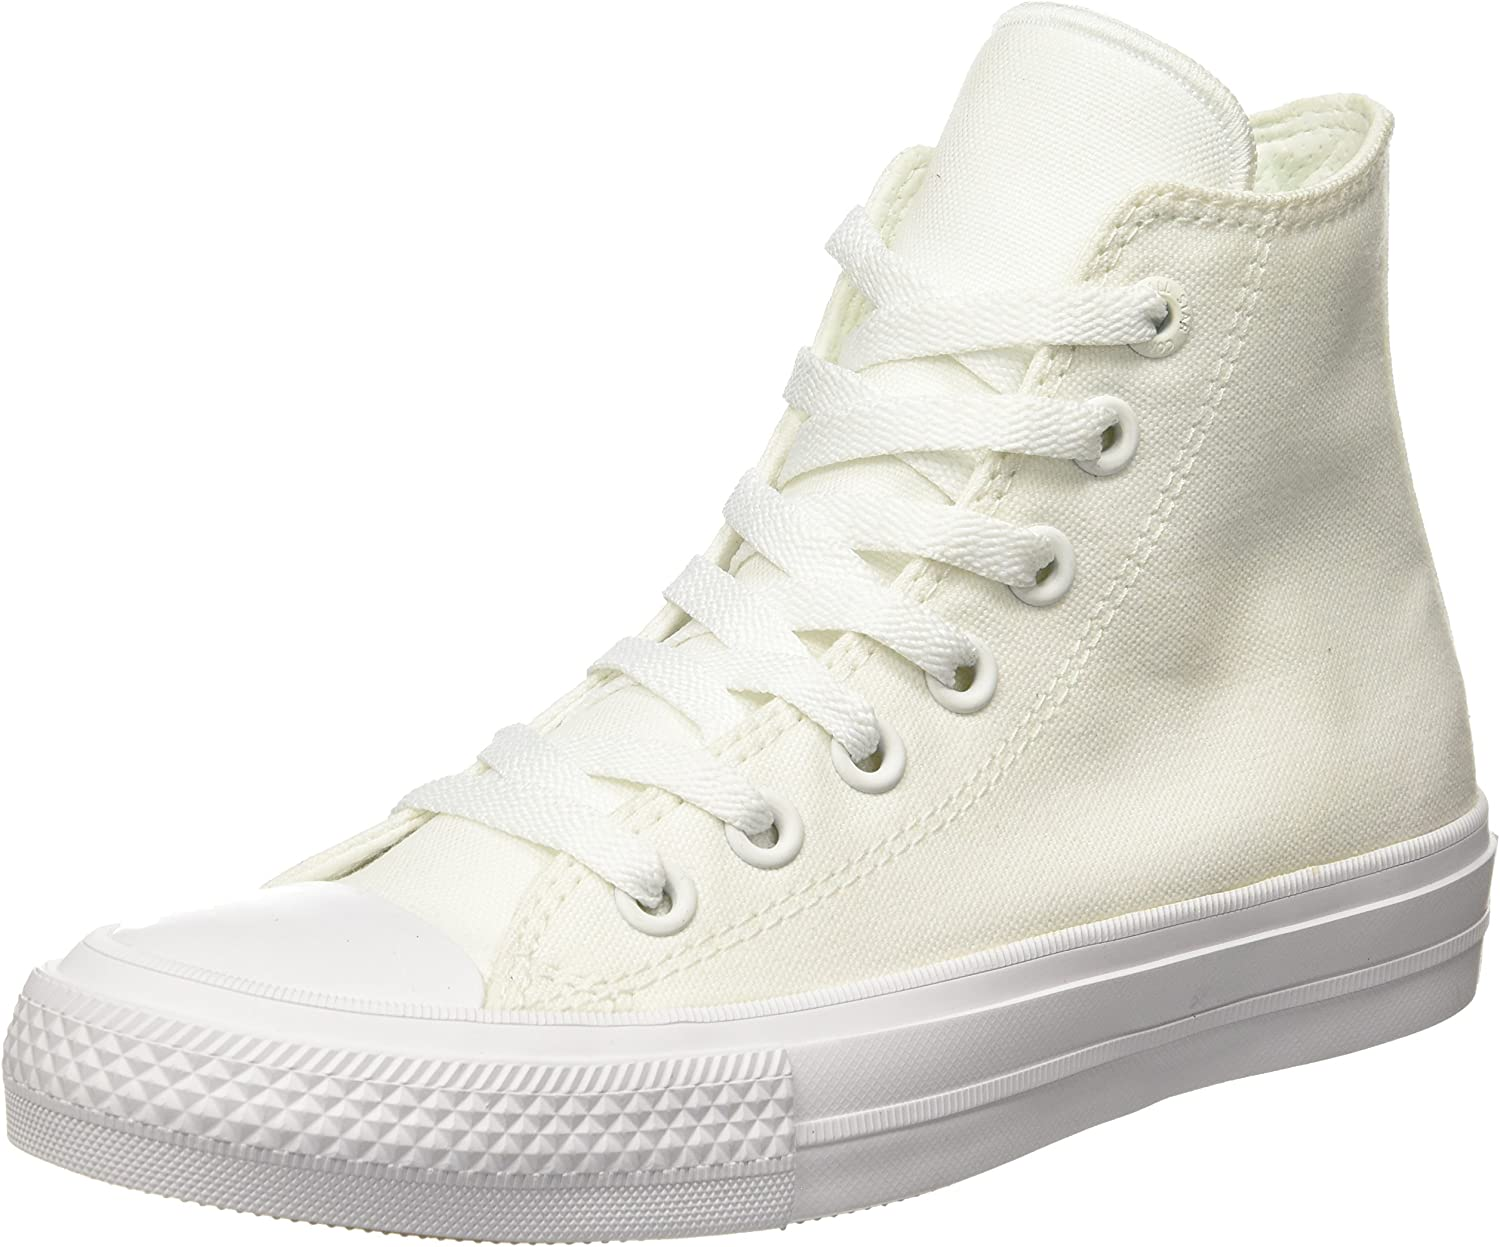 Converse Mens Chuck Taylor All Star II White Sneaker - 10 Men - 12 Women